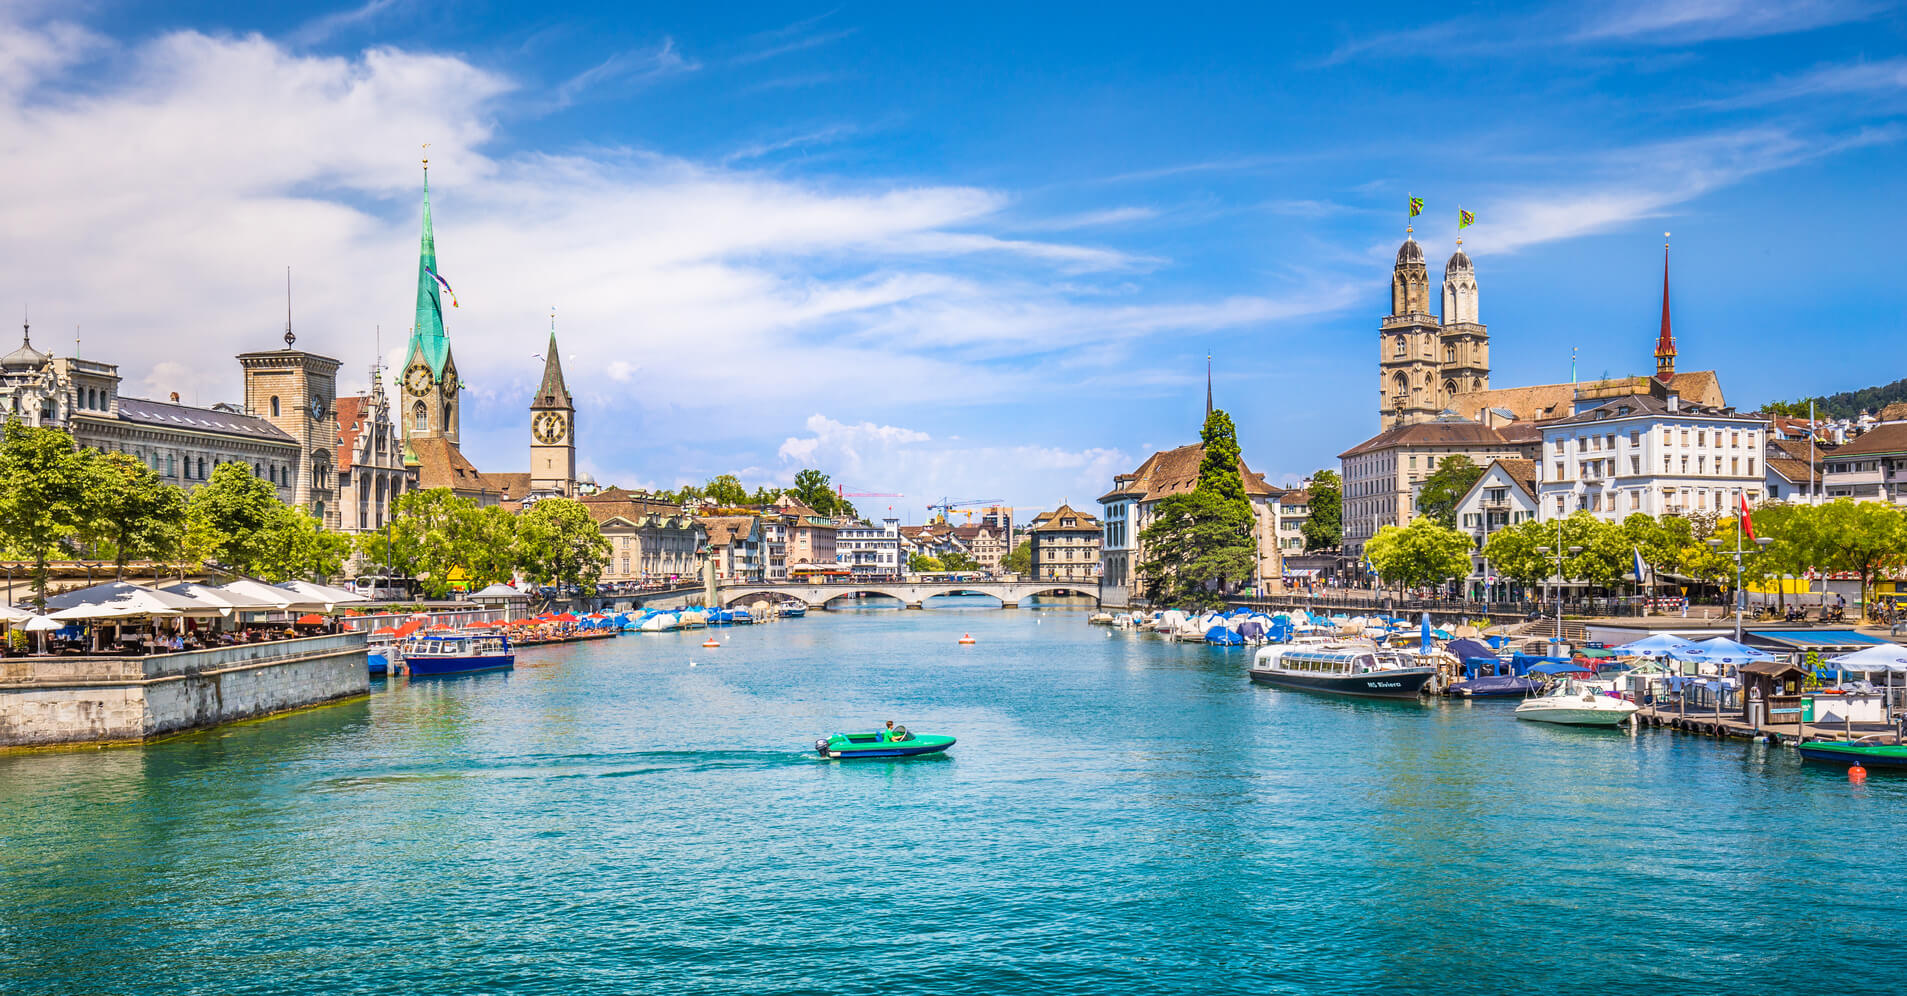 Zürich city center with river Limmat, Switzerland